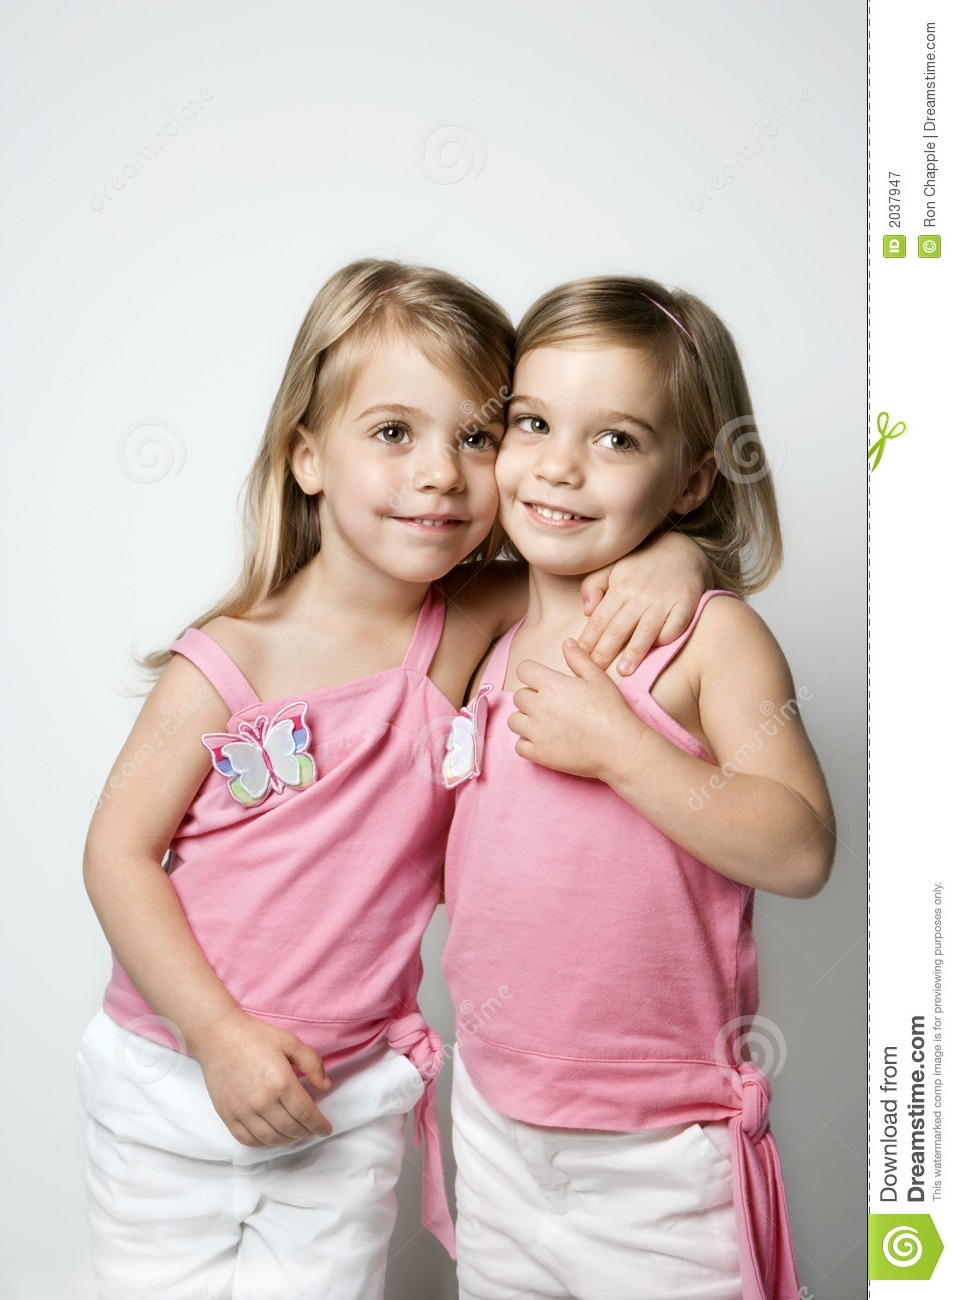 Caucasian Twin Girls. Royalty Free Stock Photography - Image: 2037947: https://www.dreamstime.com/royalty-free-stock-photography-caucasian...